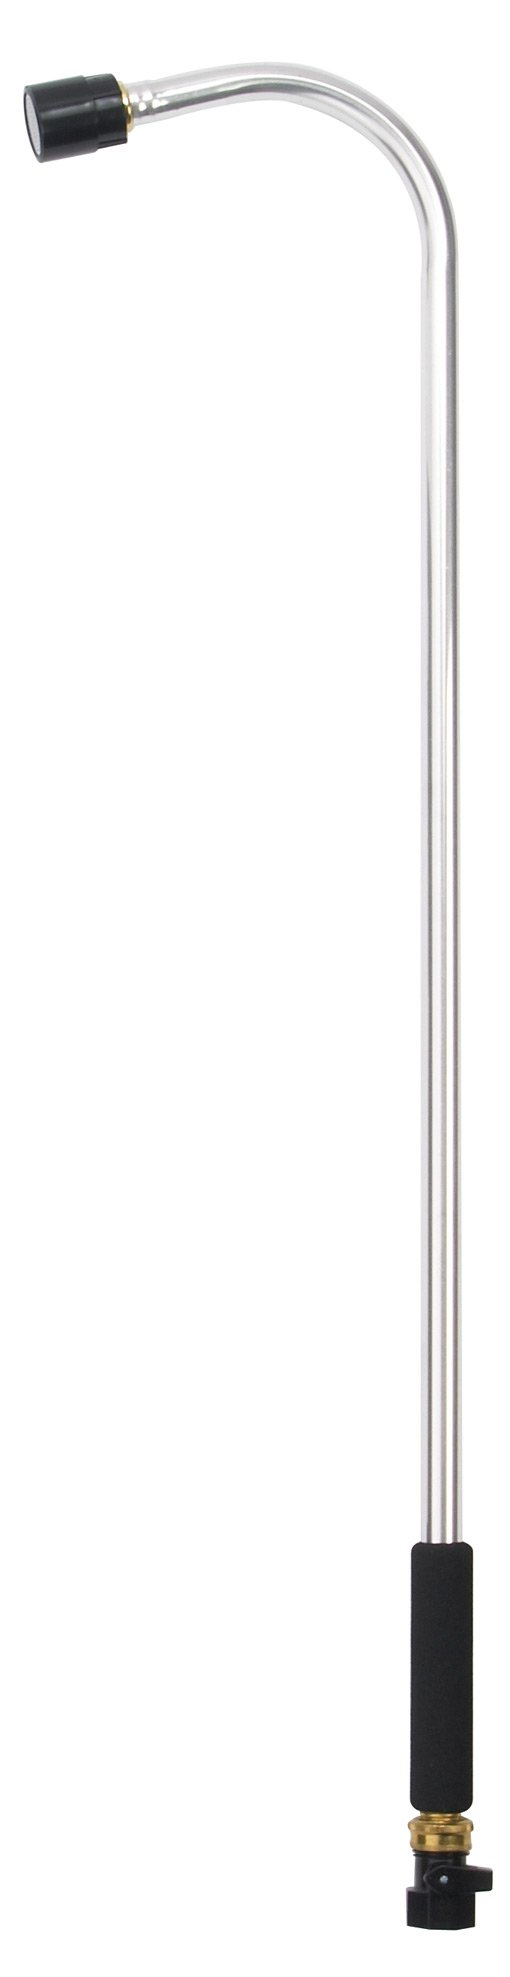 Dramm Classic Hanging Basket Watering Wand 36-Inch Length With 8-Inch Foam Grip - Silver 12358